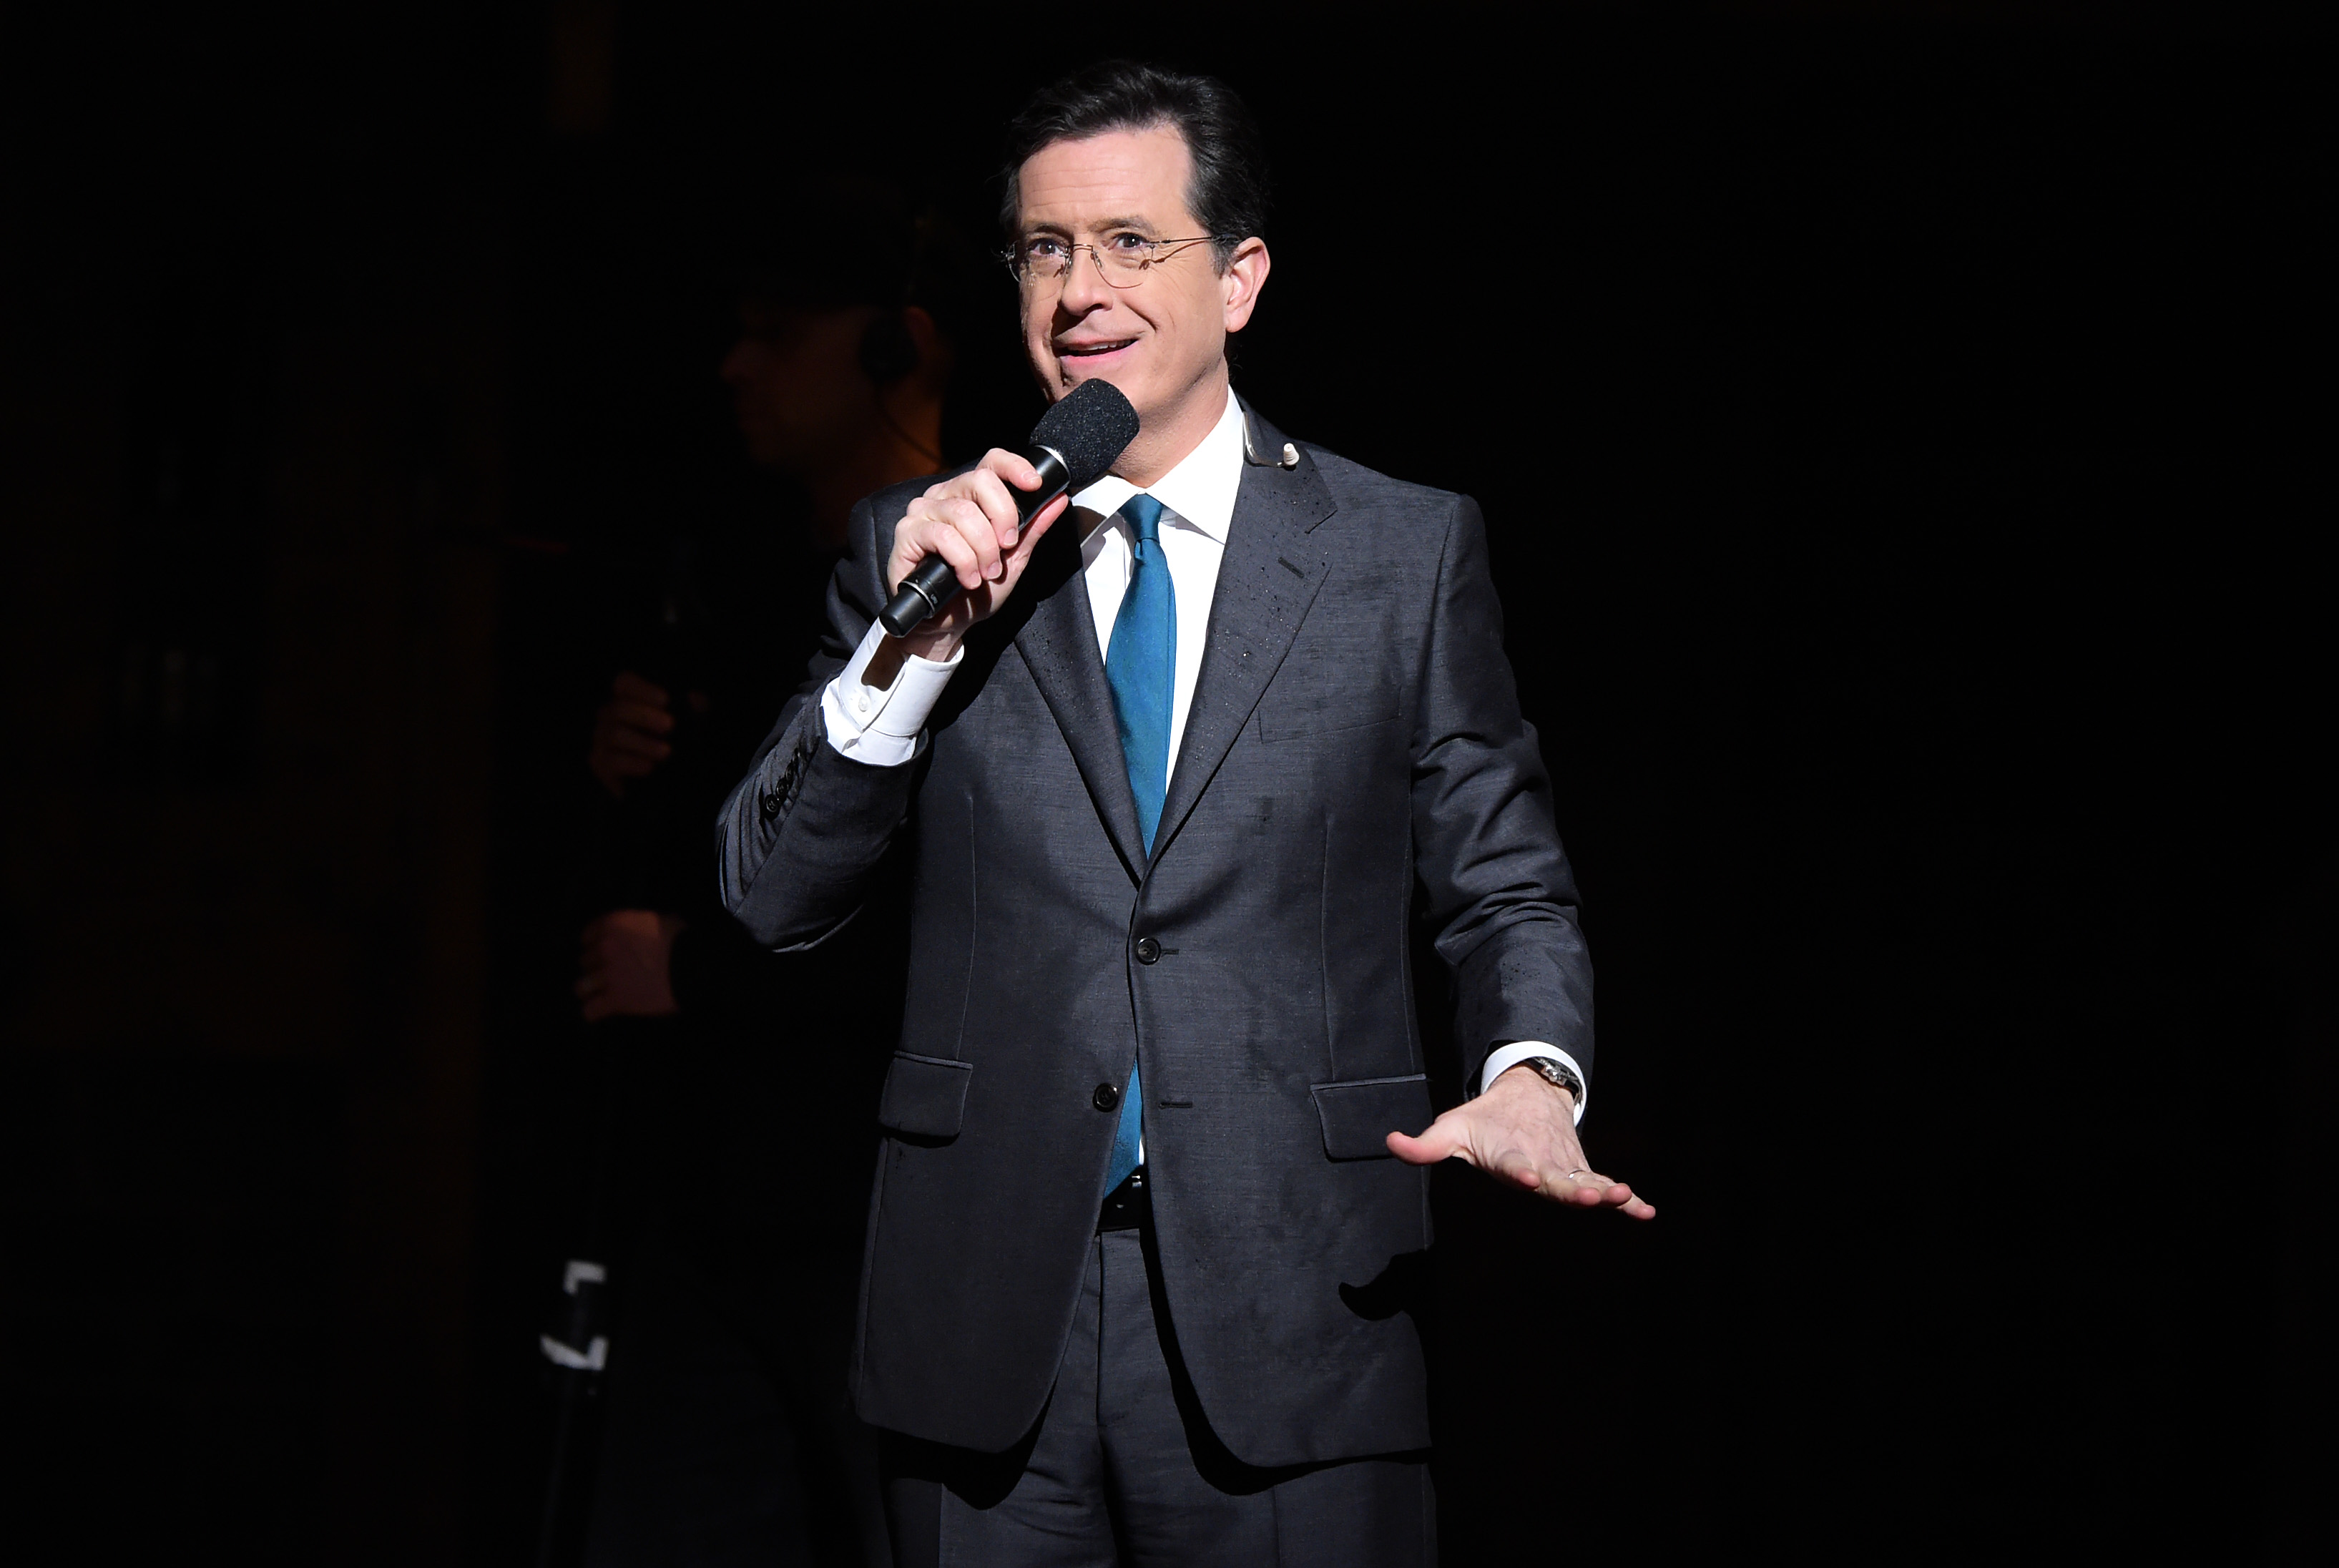 TV Host, comedian Stephen Colbert speaks on stage prior to  Hamilton  GRAMMY performance for The 58th GRAMMY Awards at Richard Rodgers Theater on February 15, 2016 in New York City.